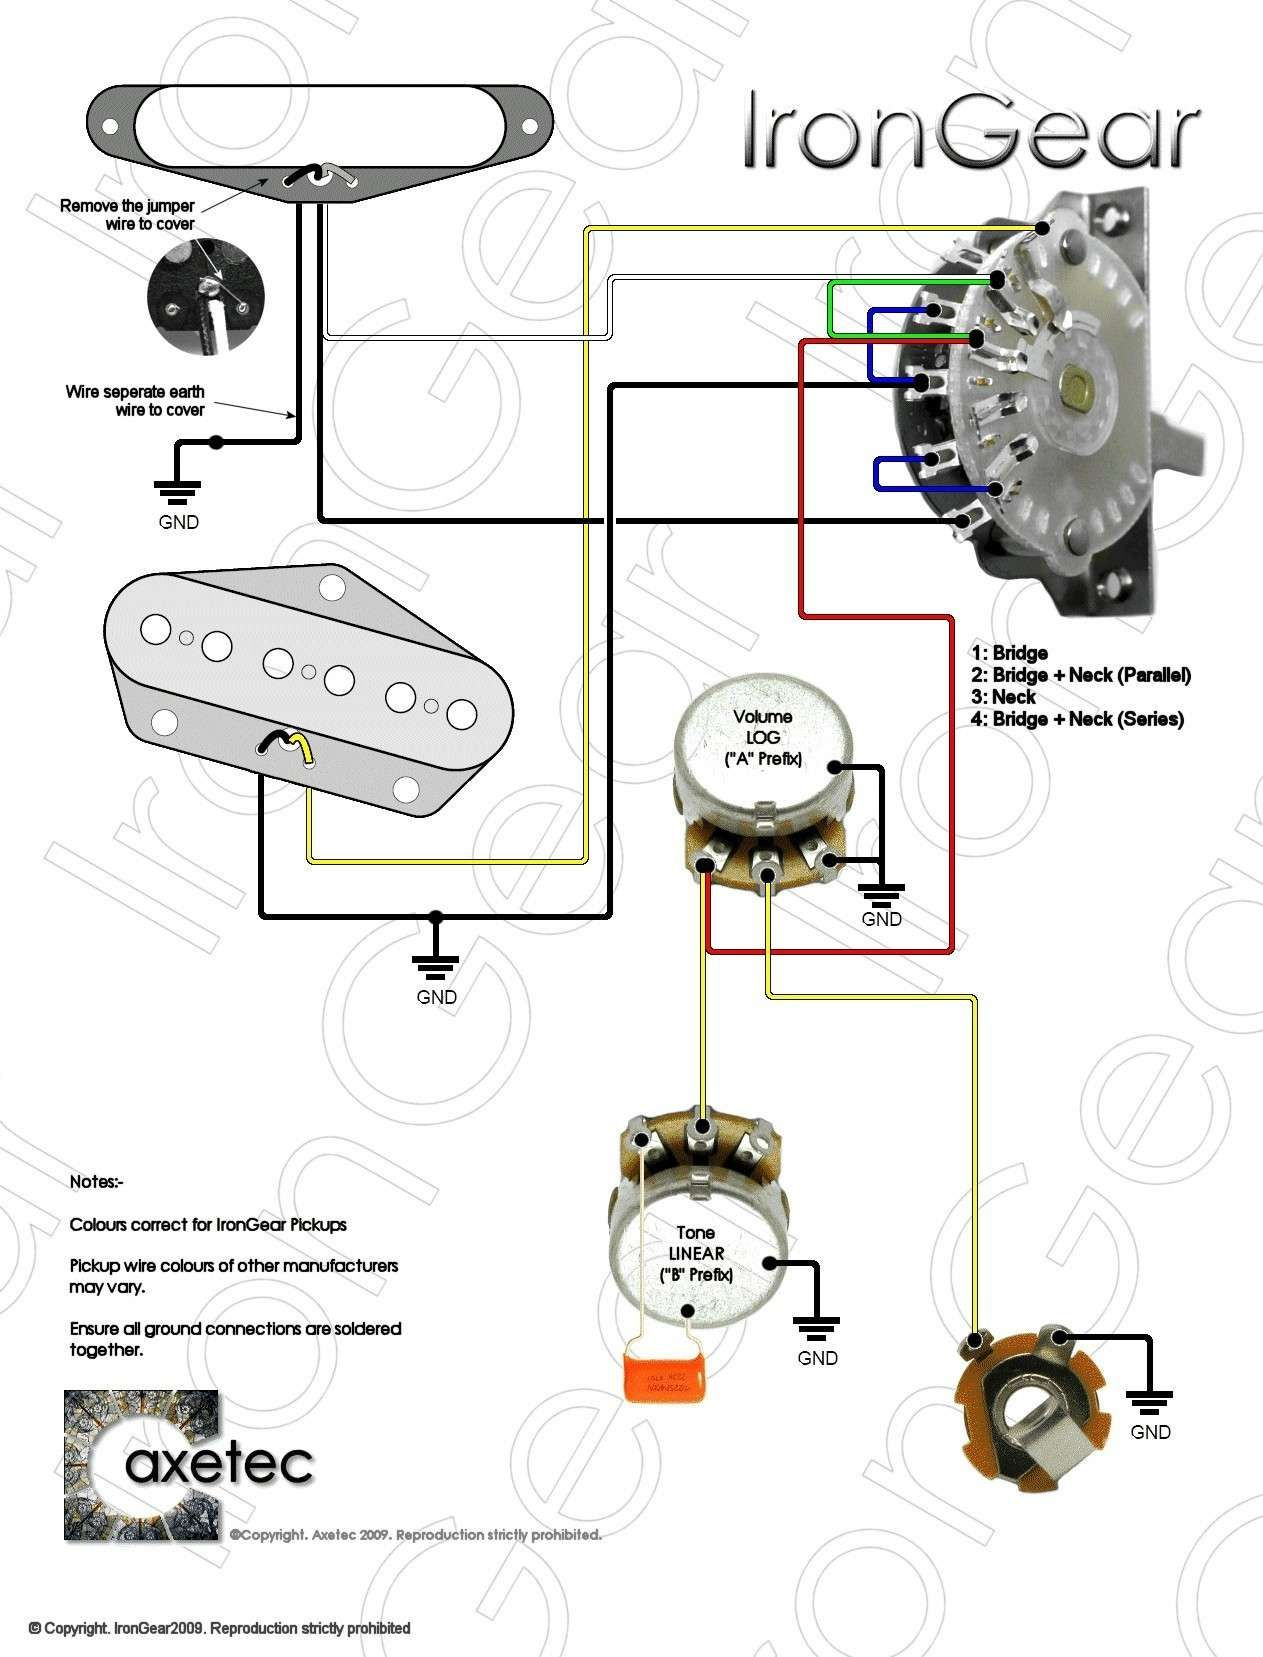 Wiring Diagram 3 Way Switch 3 way switch wiring, Three